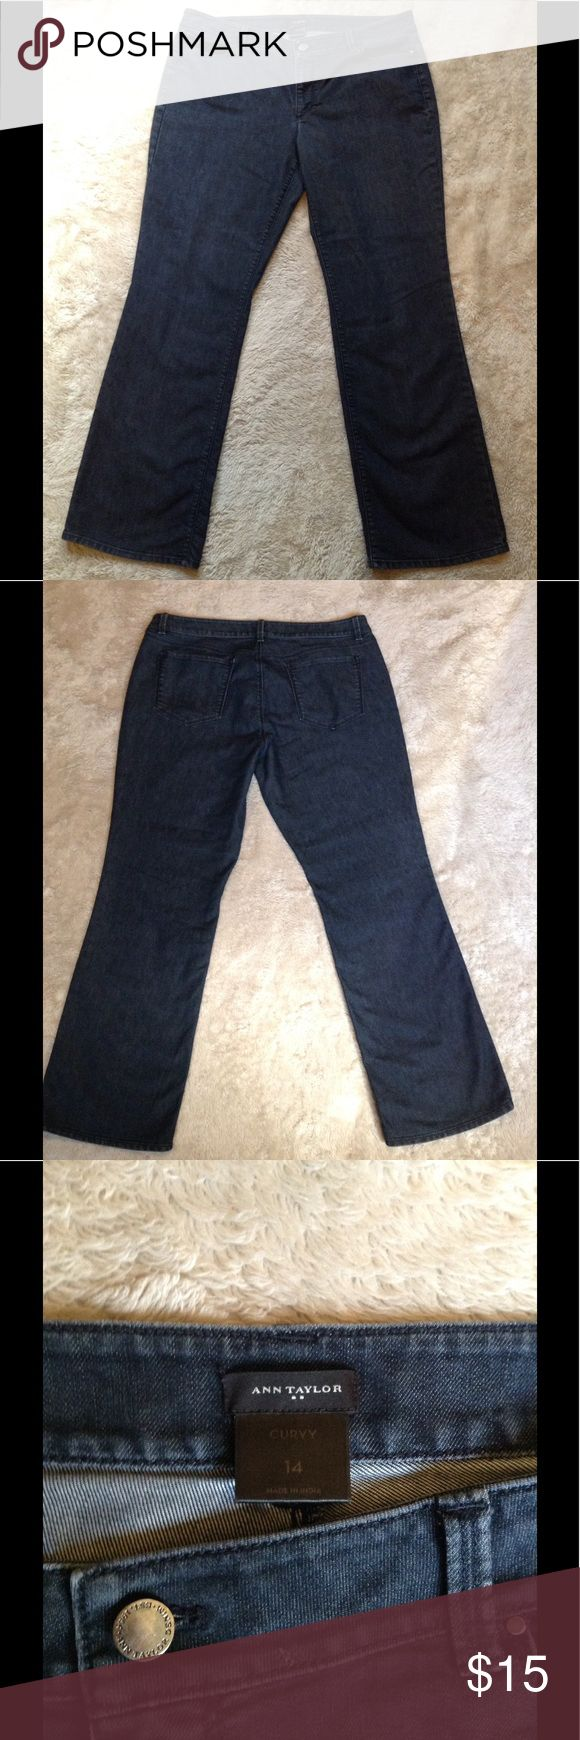 Ann Taylor Curvy jeans Dark wash jeans by Ann Taylor size 14 a little bit worn but still in great condition. Ann Taylor Jeans Boot Cut